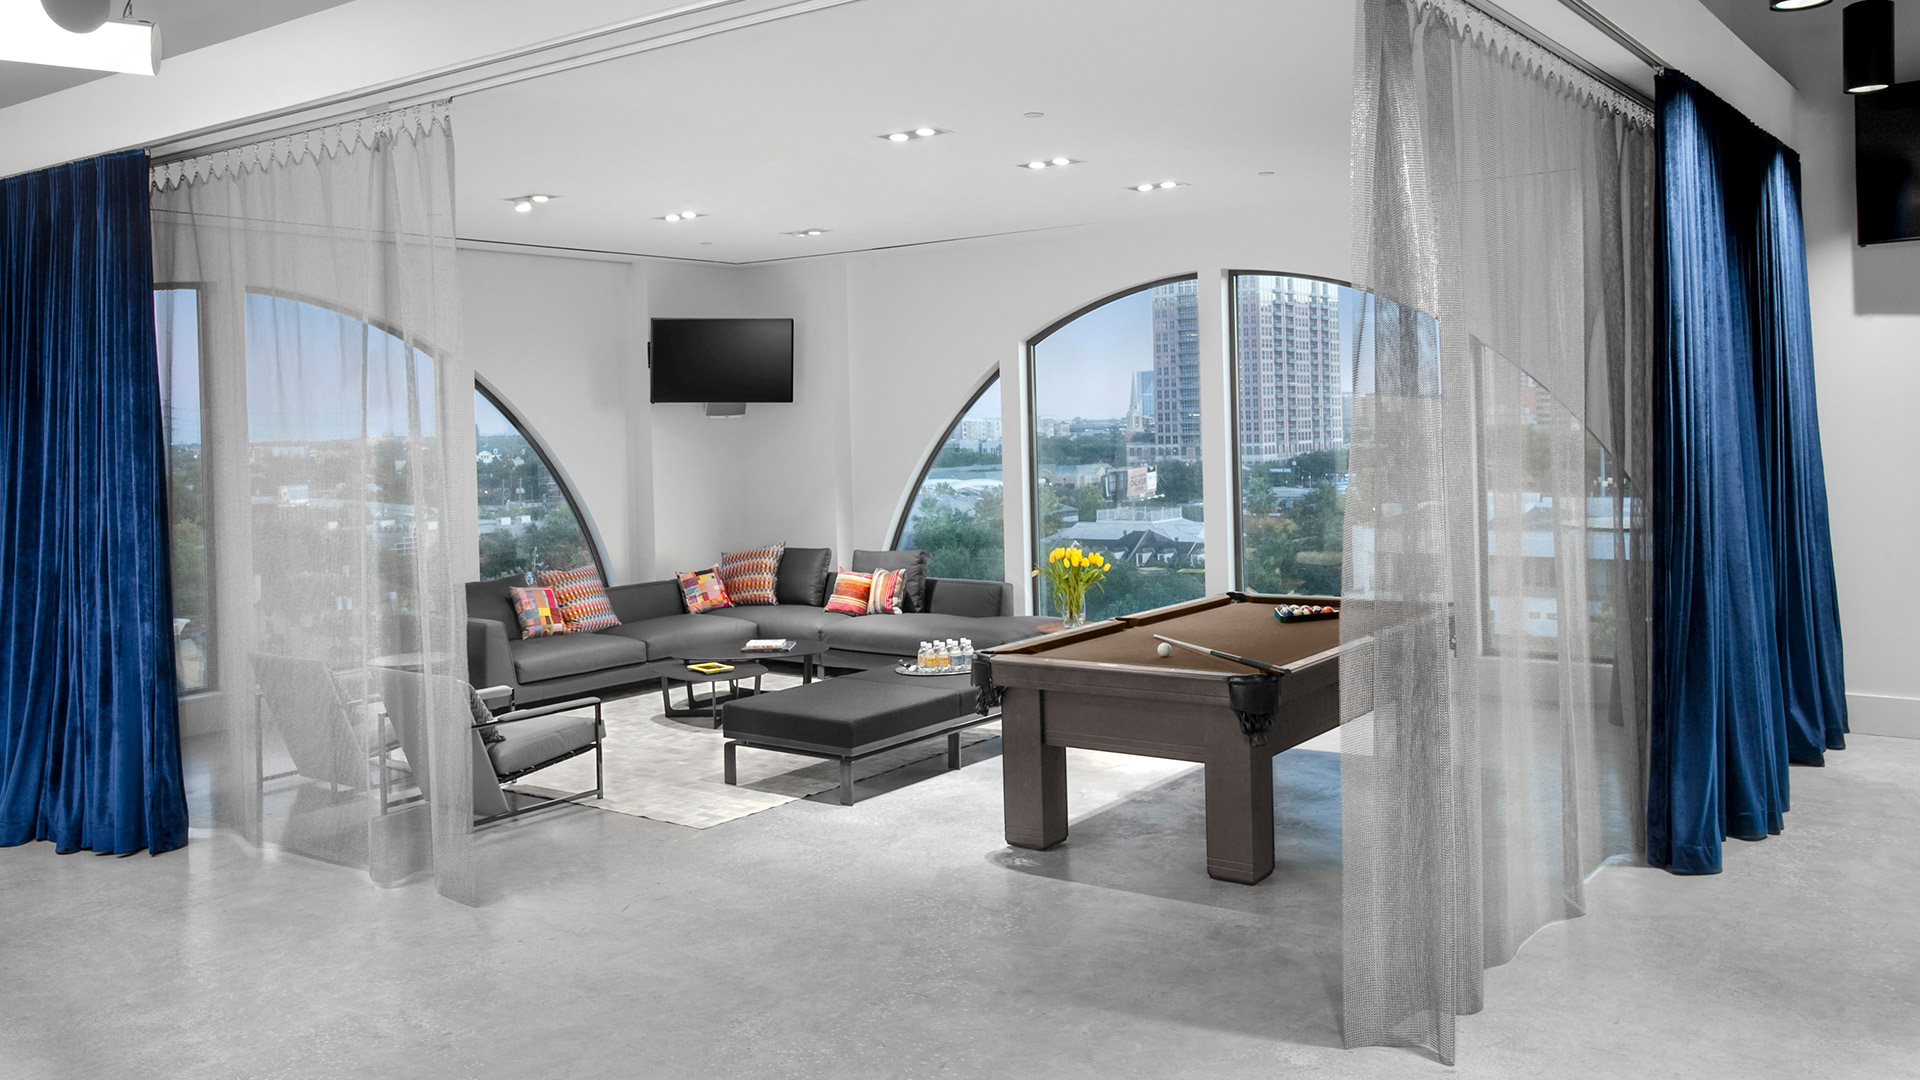 Privacy Curtain Breakout Space Penthouse Downtown Views Corporate Interior Design Vista Energy